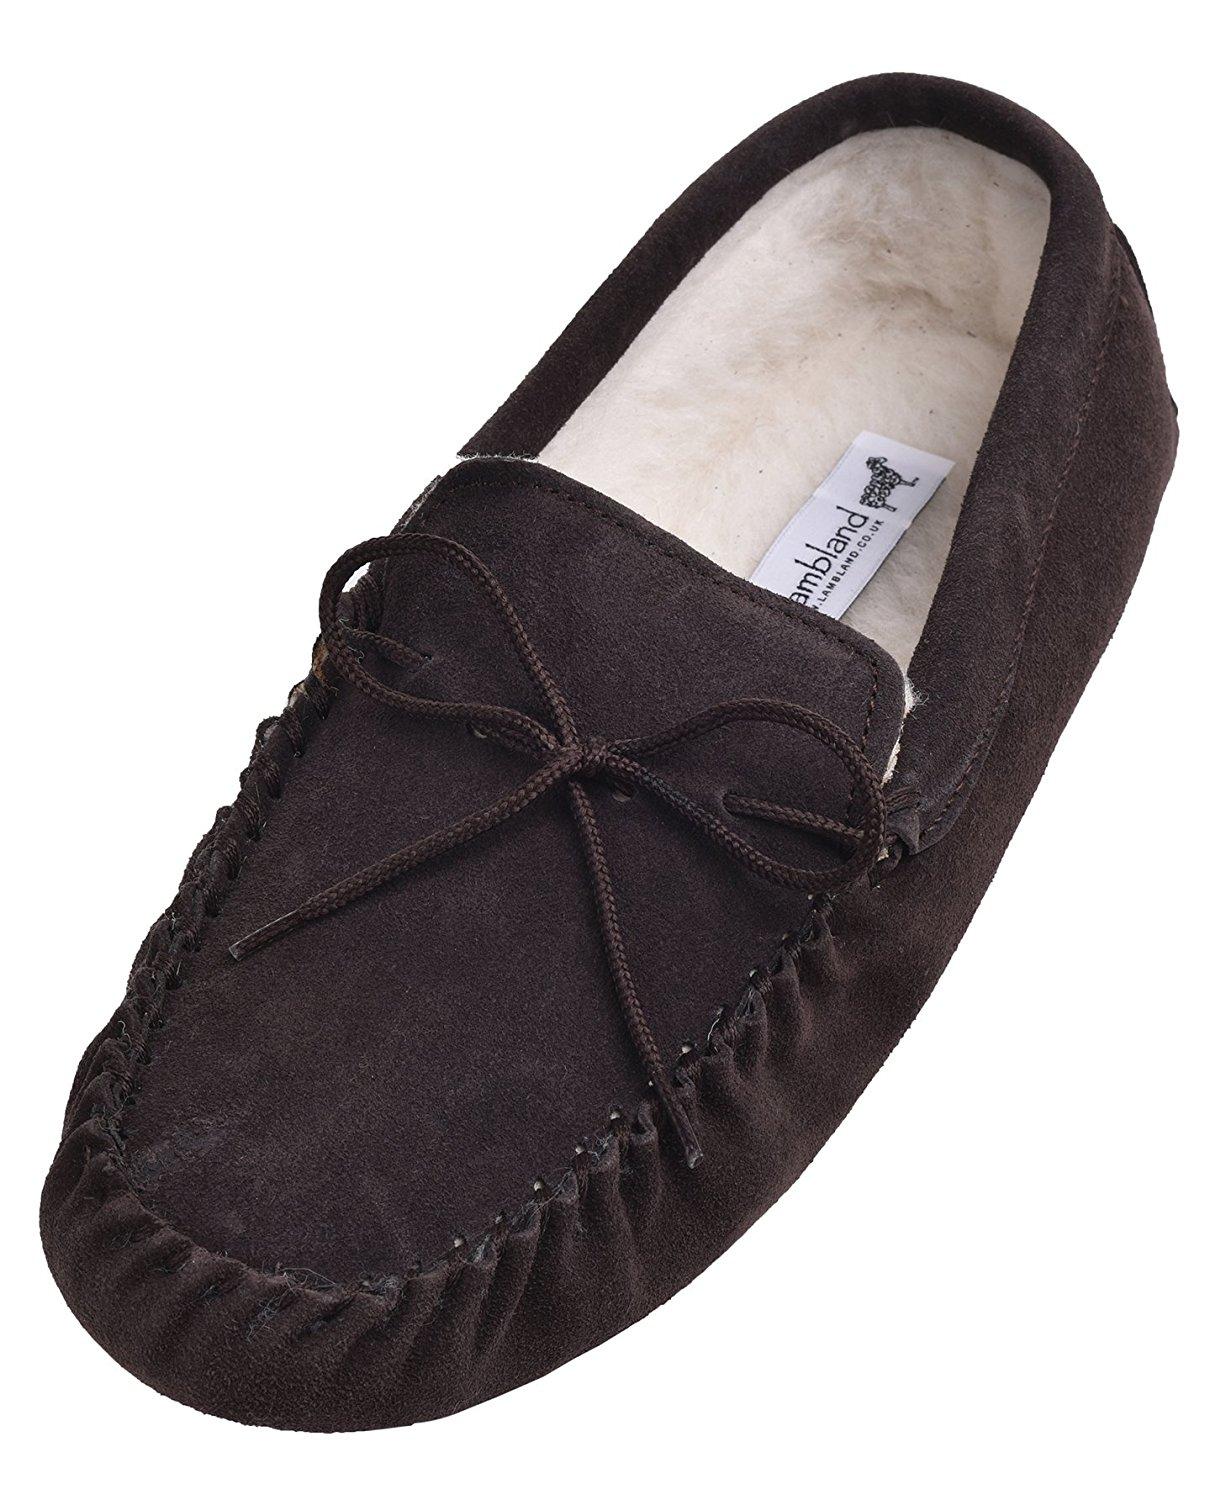 6941b912e Get Quotations · LAMBLAND Mens Genuine Suede Sheepskin Moccasins Slippers  With Soft Suede Sole